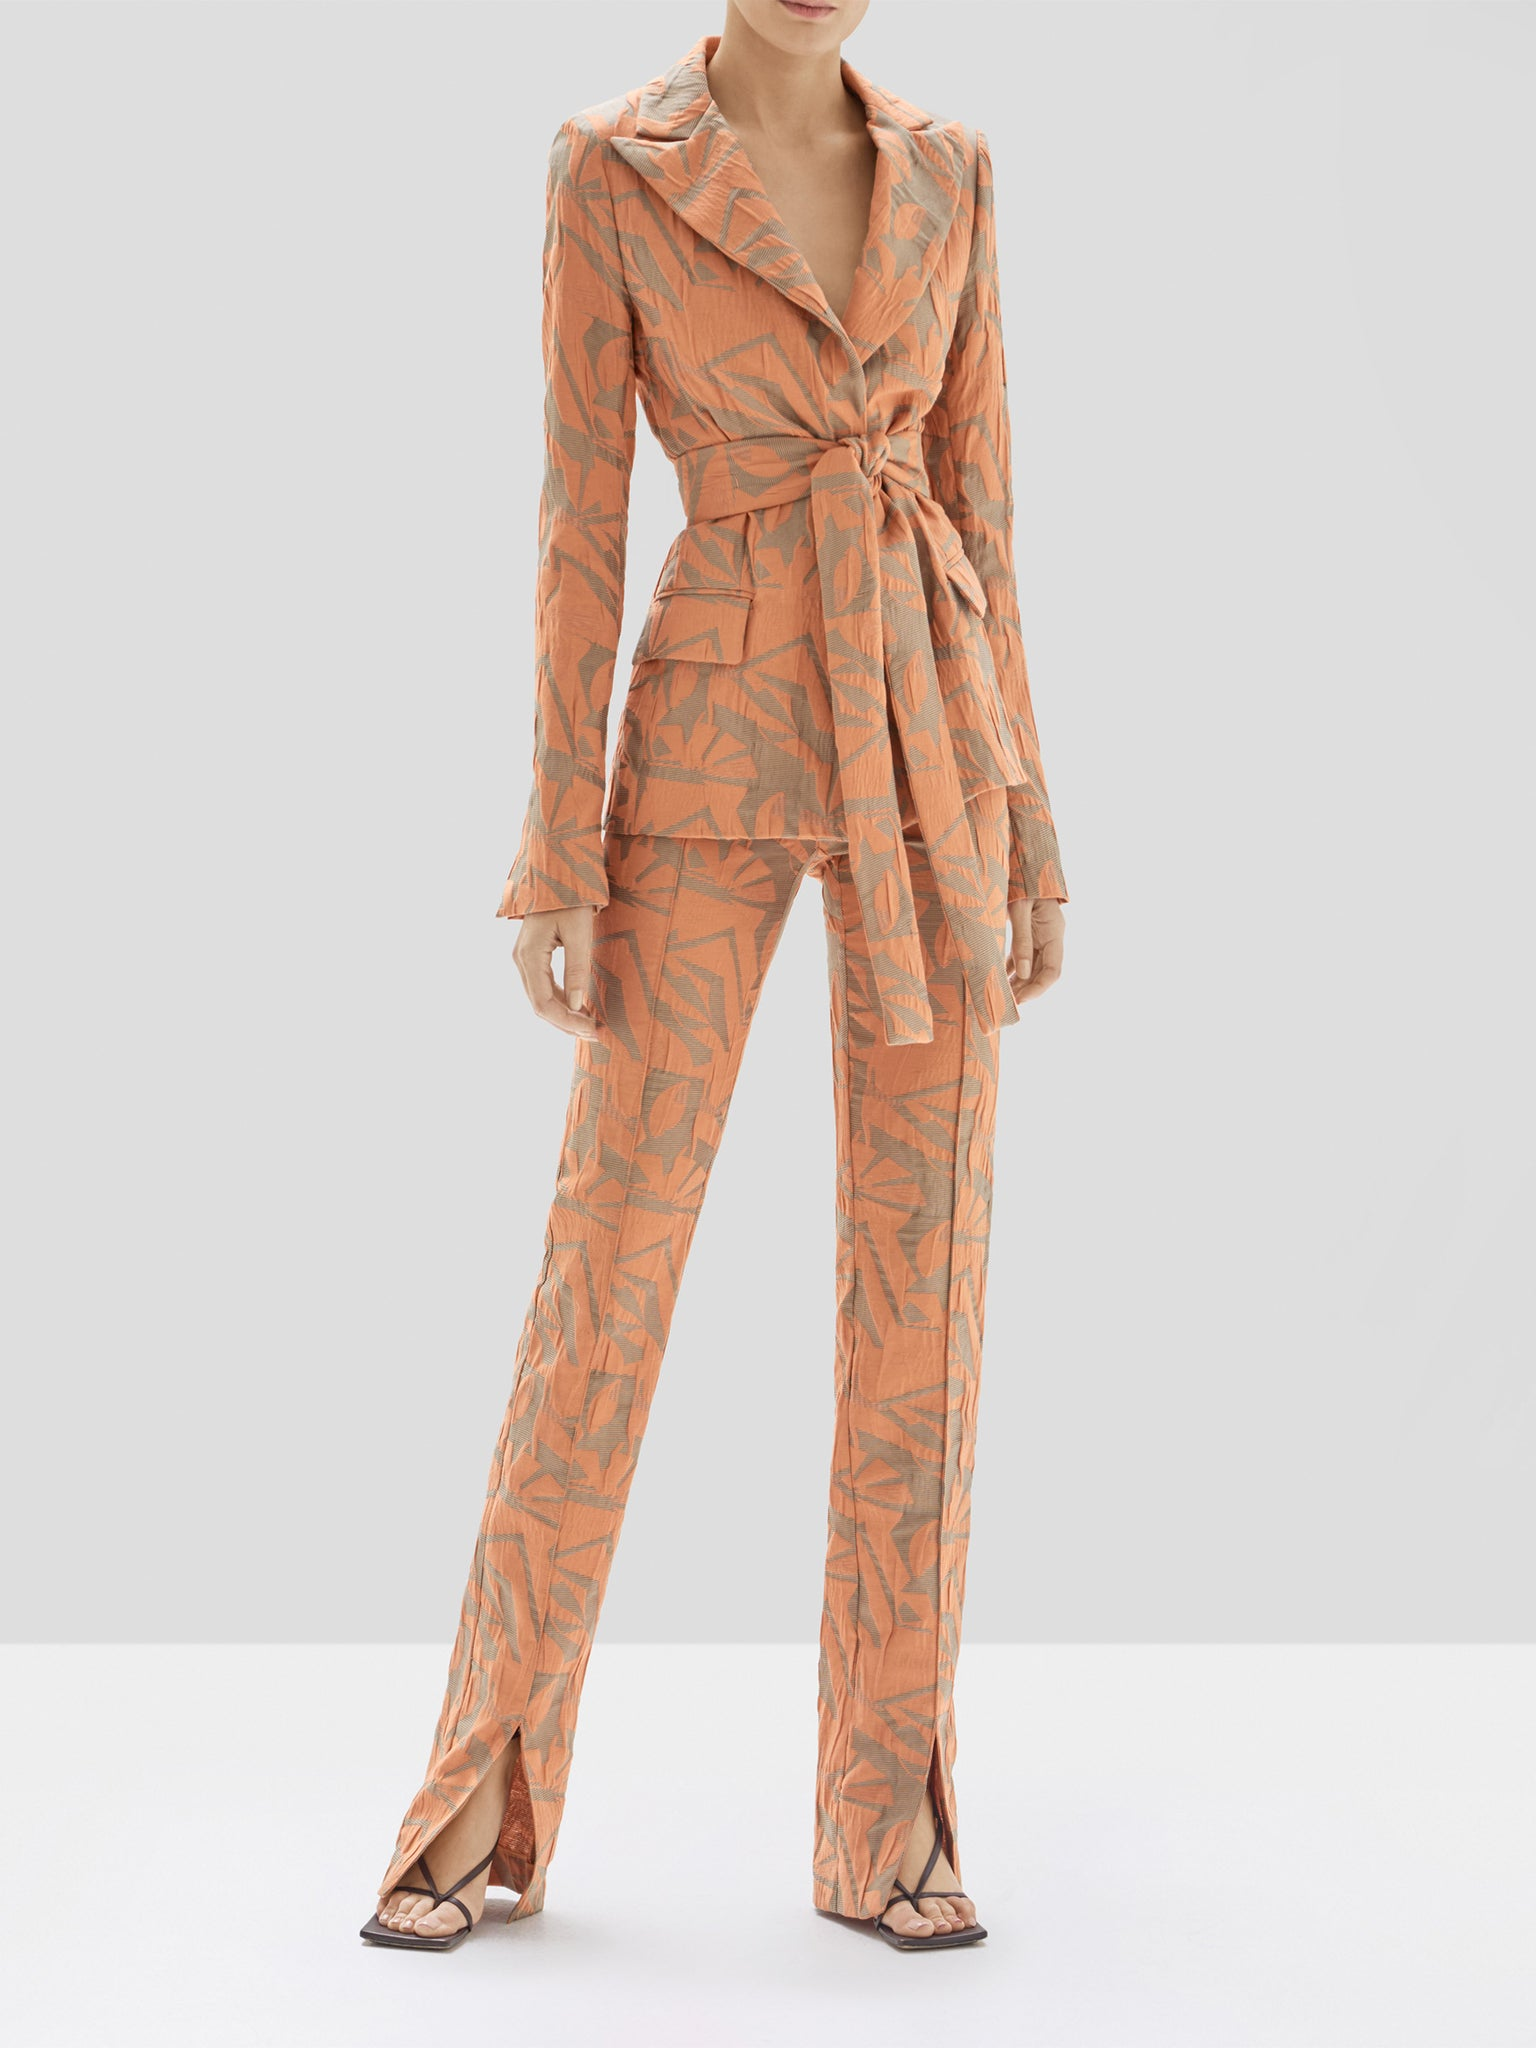 Alexis Malda Jacket and Attila Pant in Amber from the Pre Spring 2020 Collection